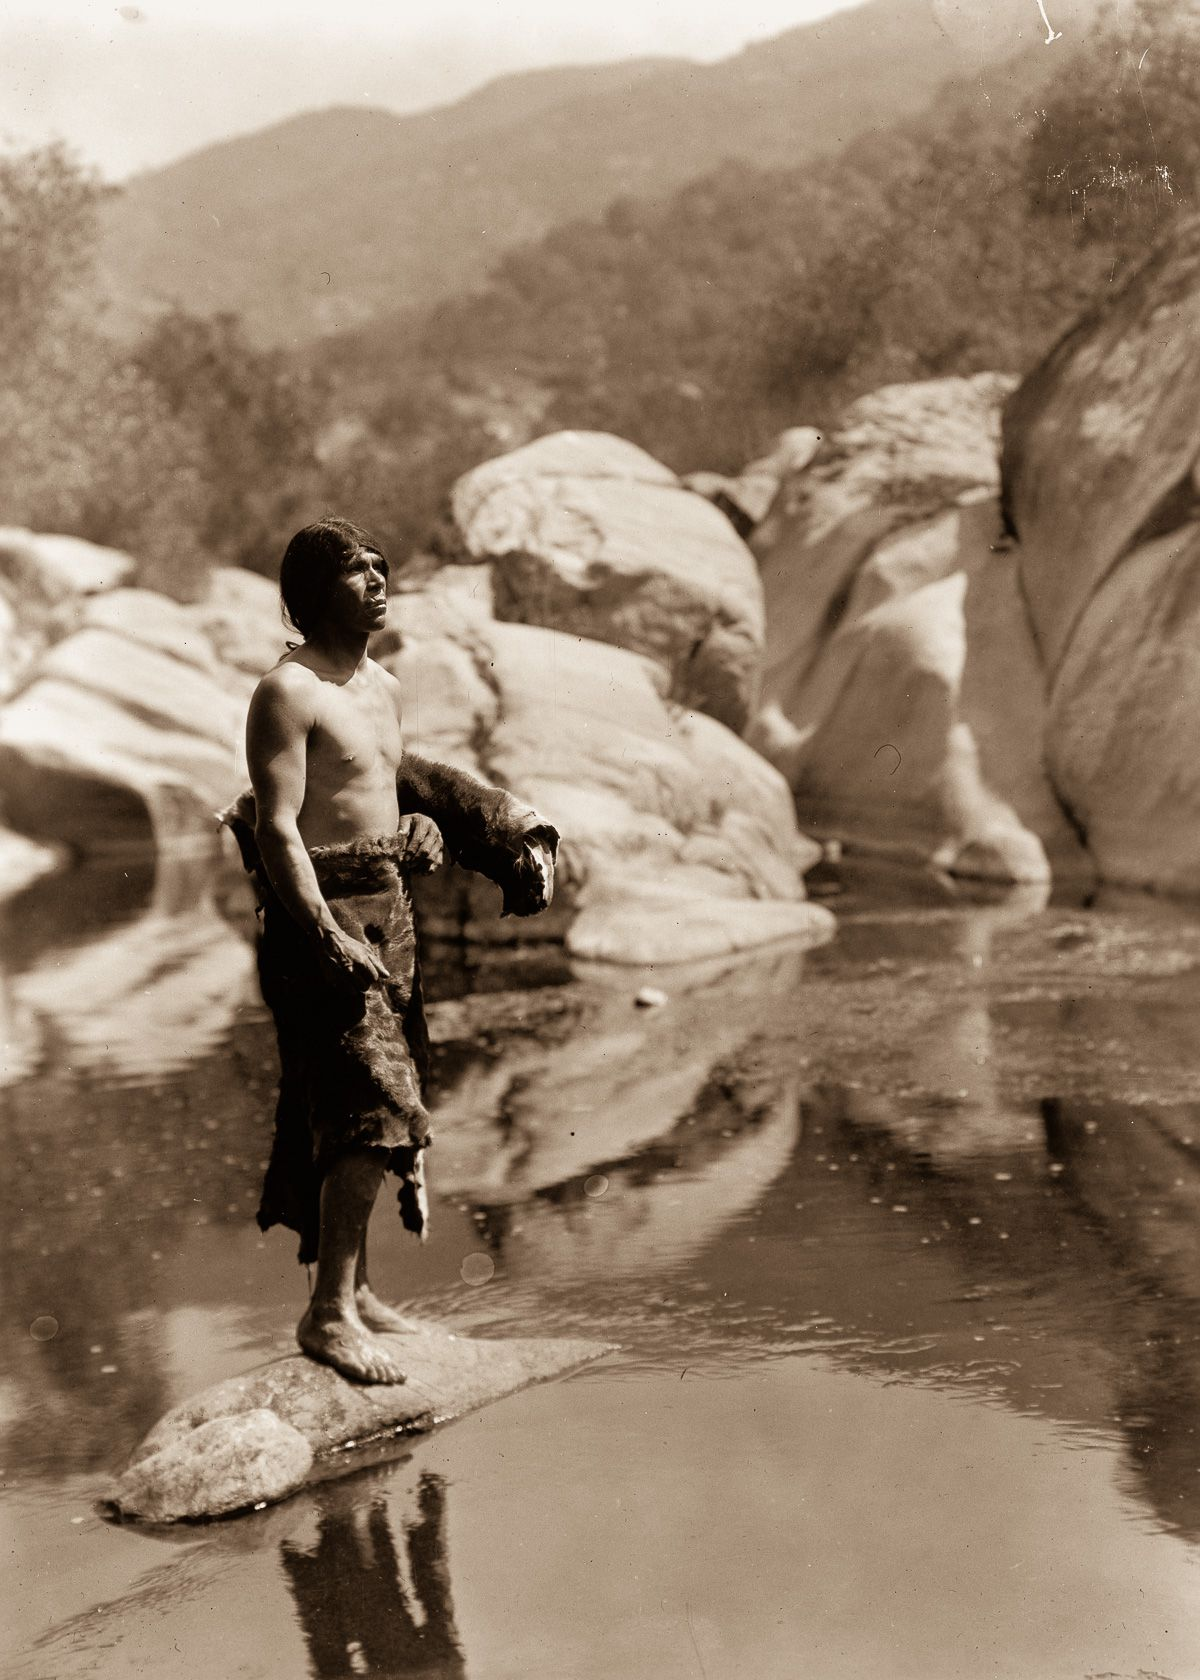 A Mariposa man on the Tule River Reservation,  1924.  ©EDWARD S. CURTIS/LIBRARY OF CONGRESS